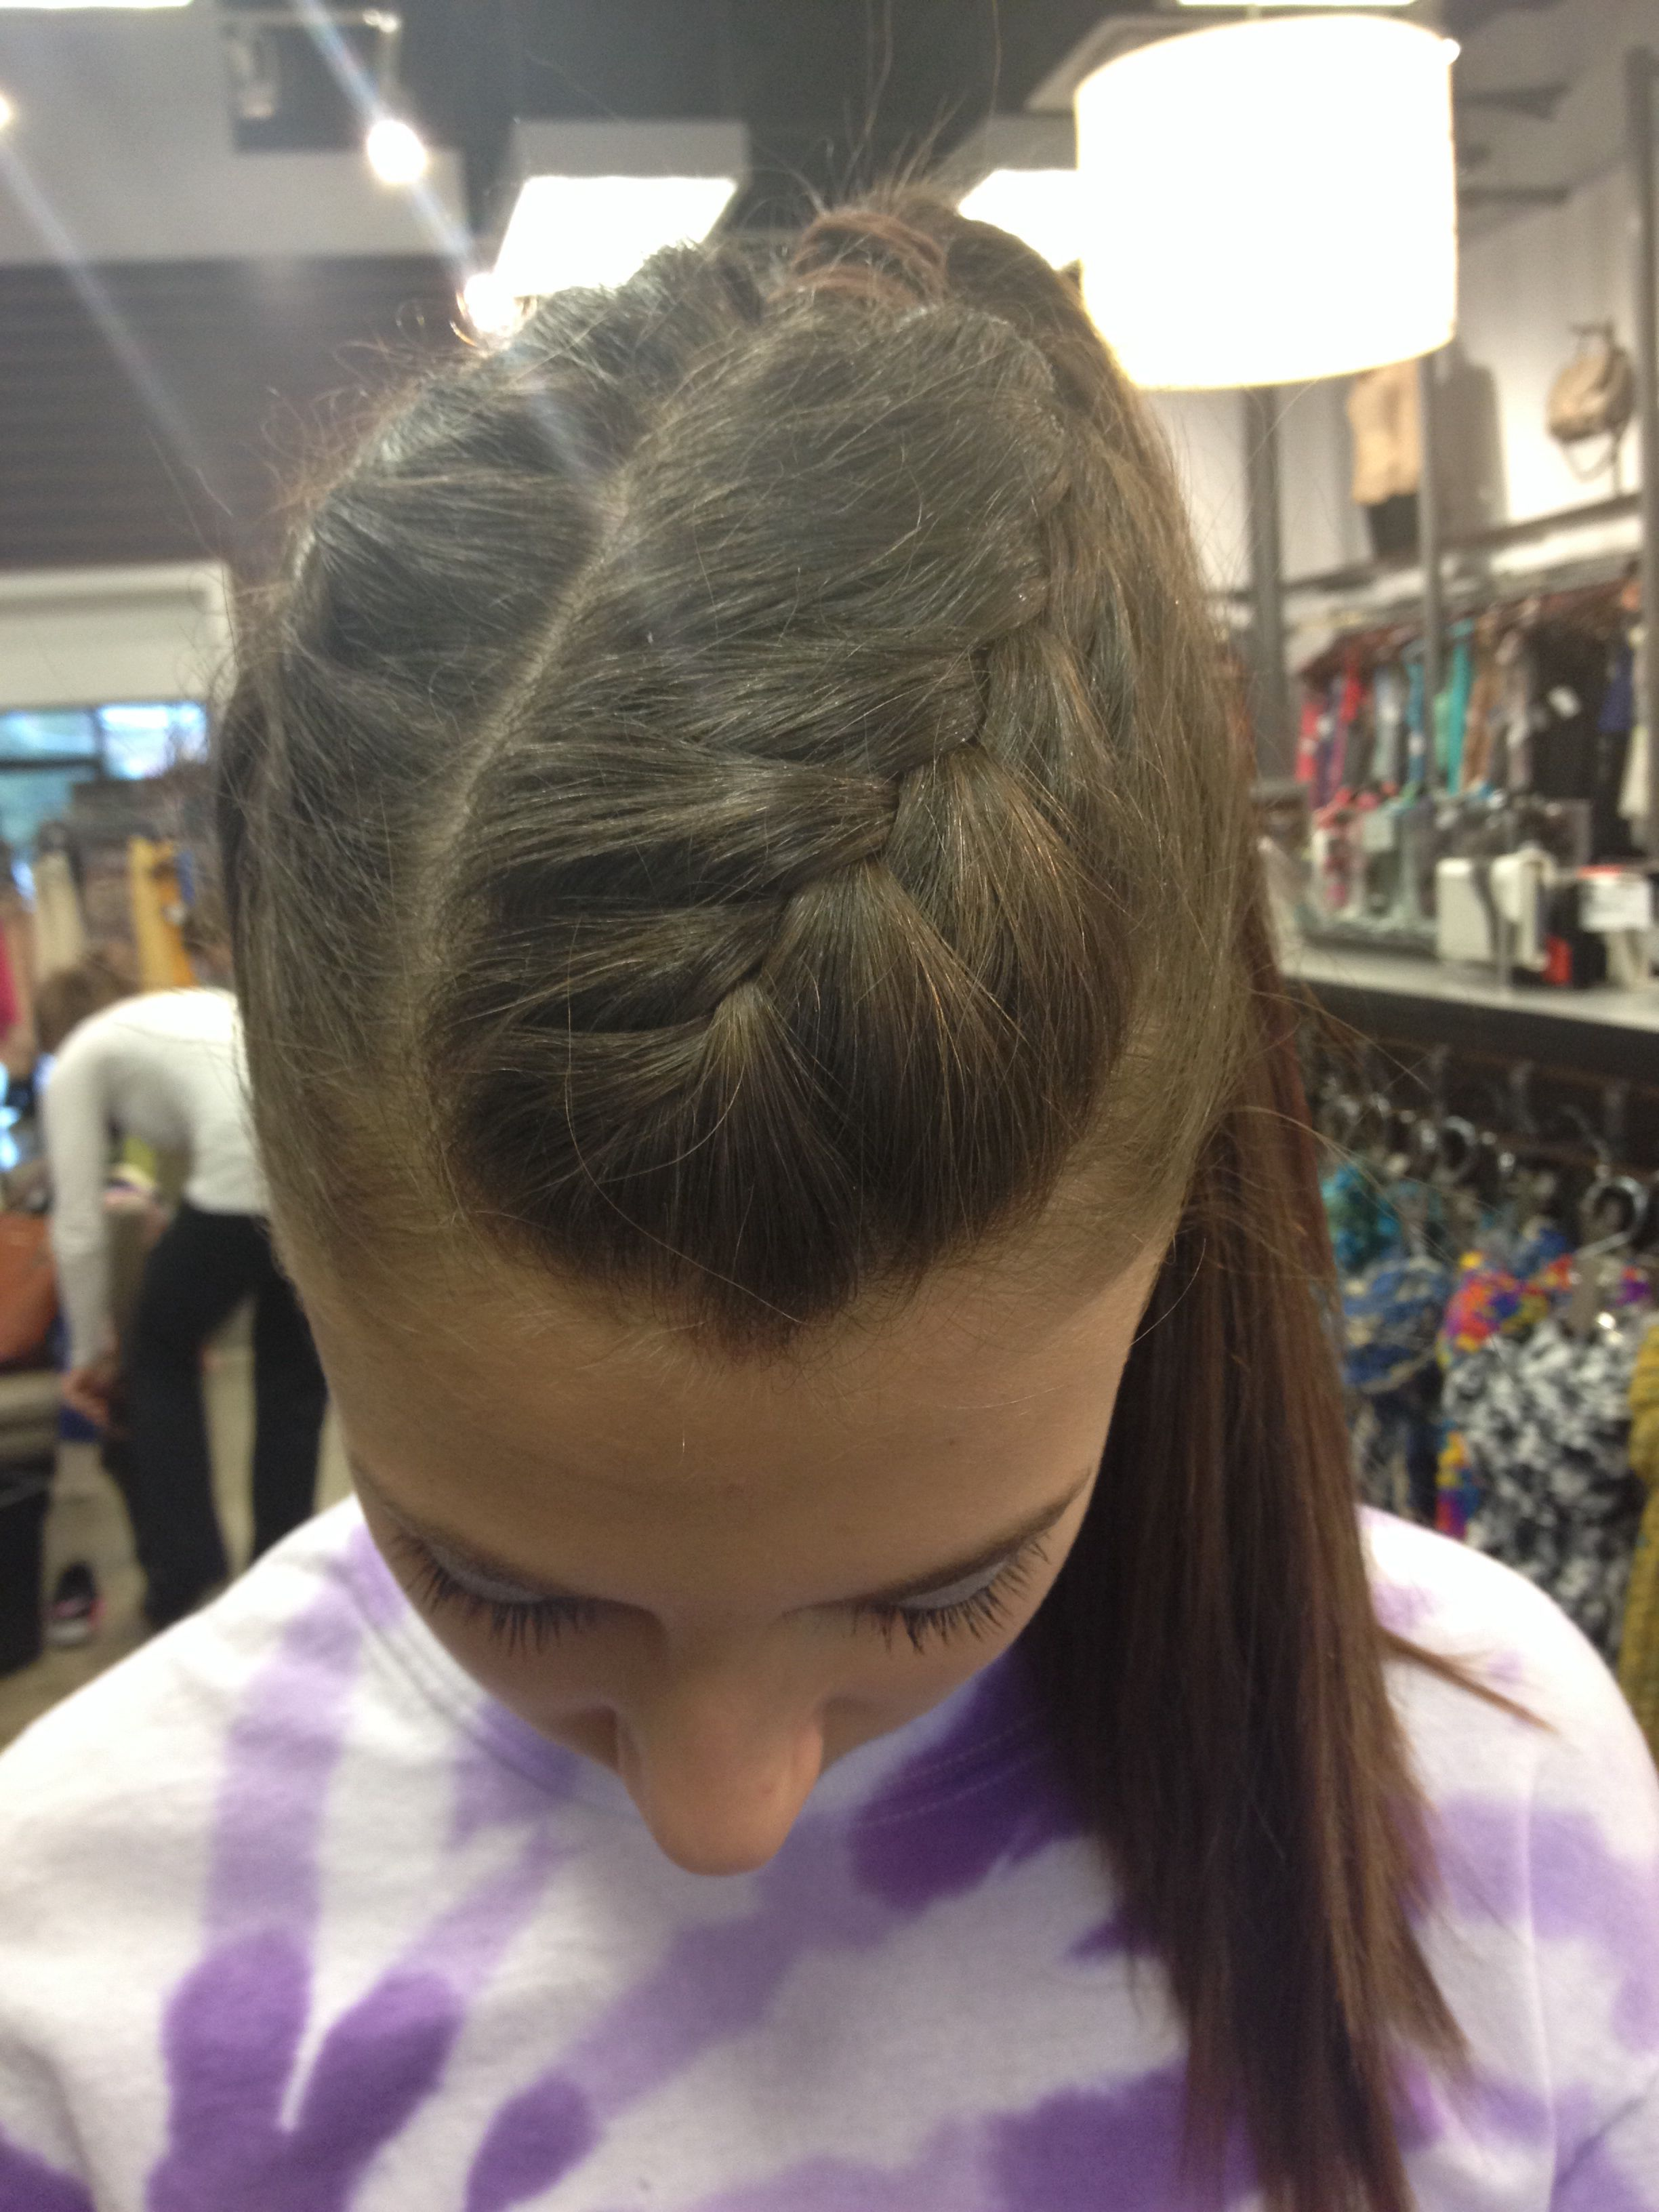 cheer hair: braided on 2 sides with high ponytail